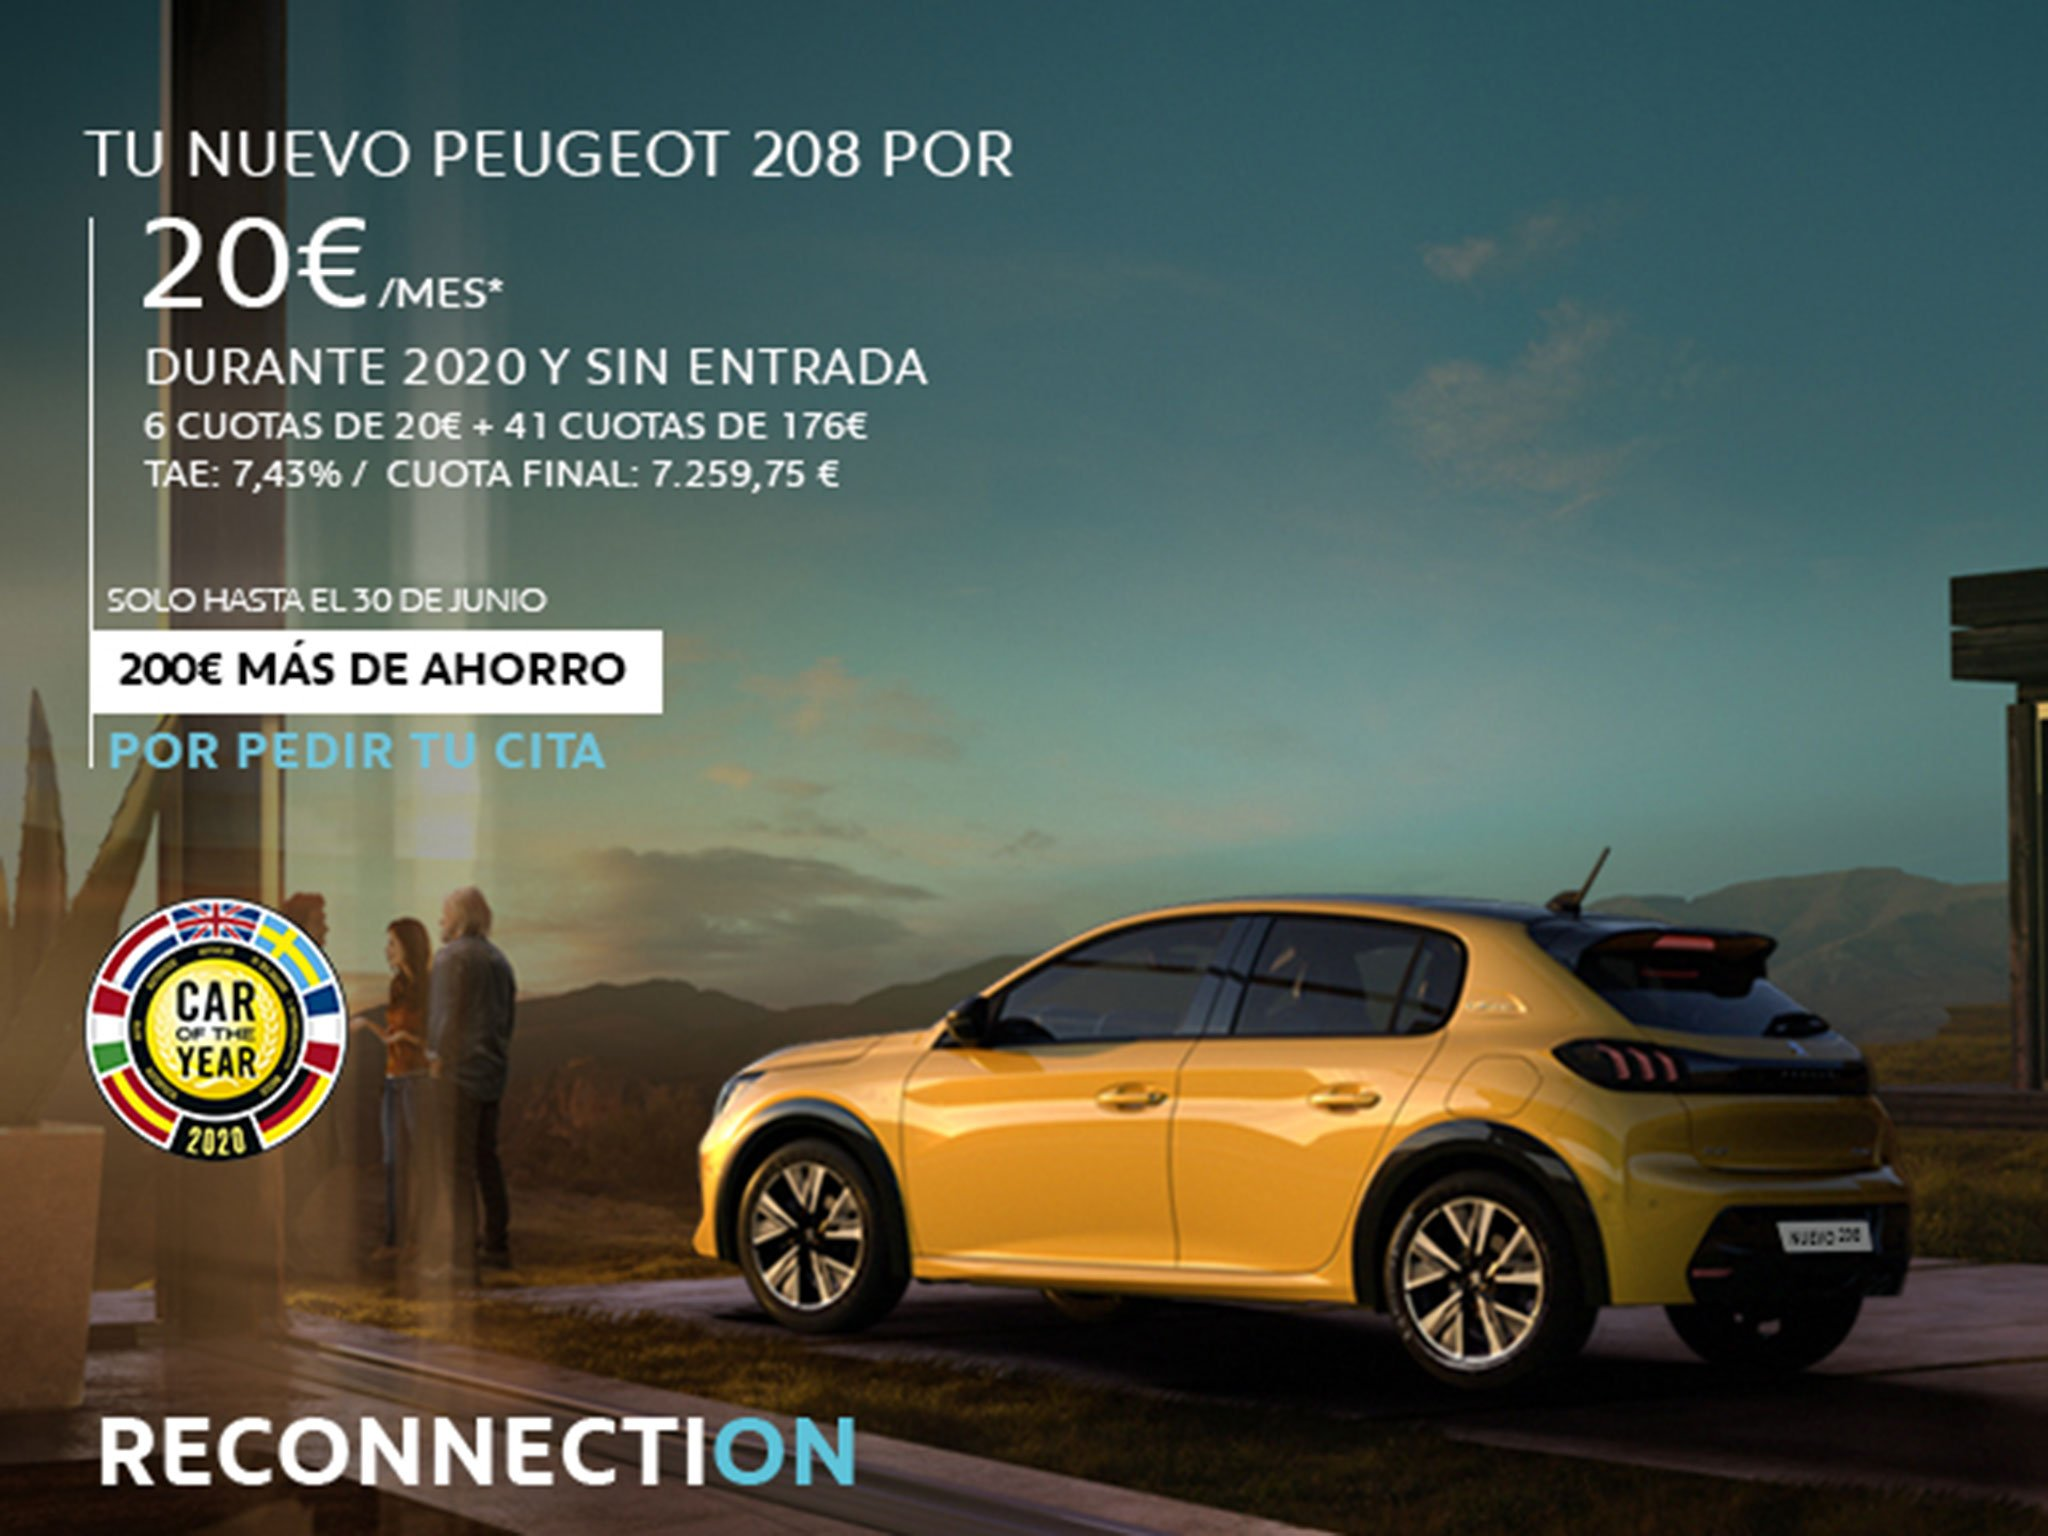 New Peugeot 208 with Reconnection - Peumóvil